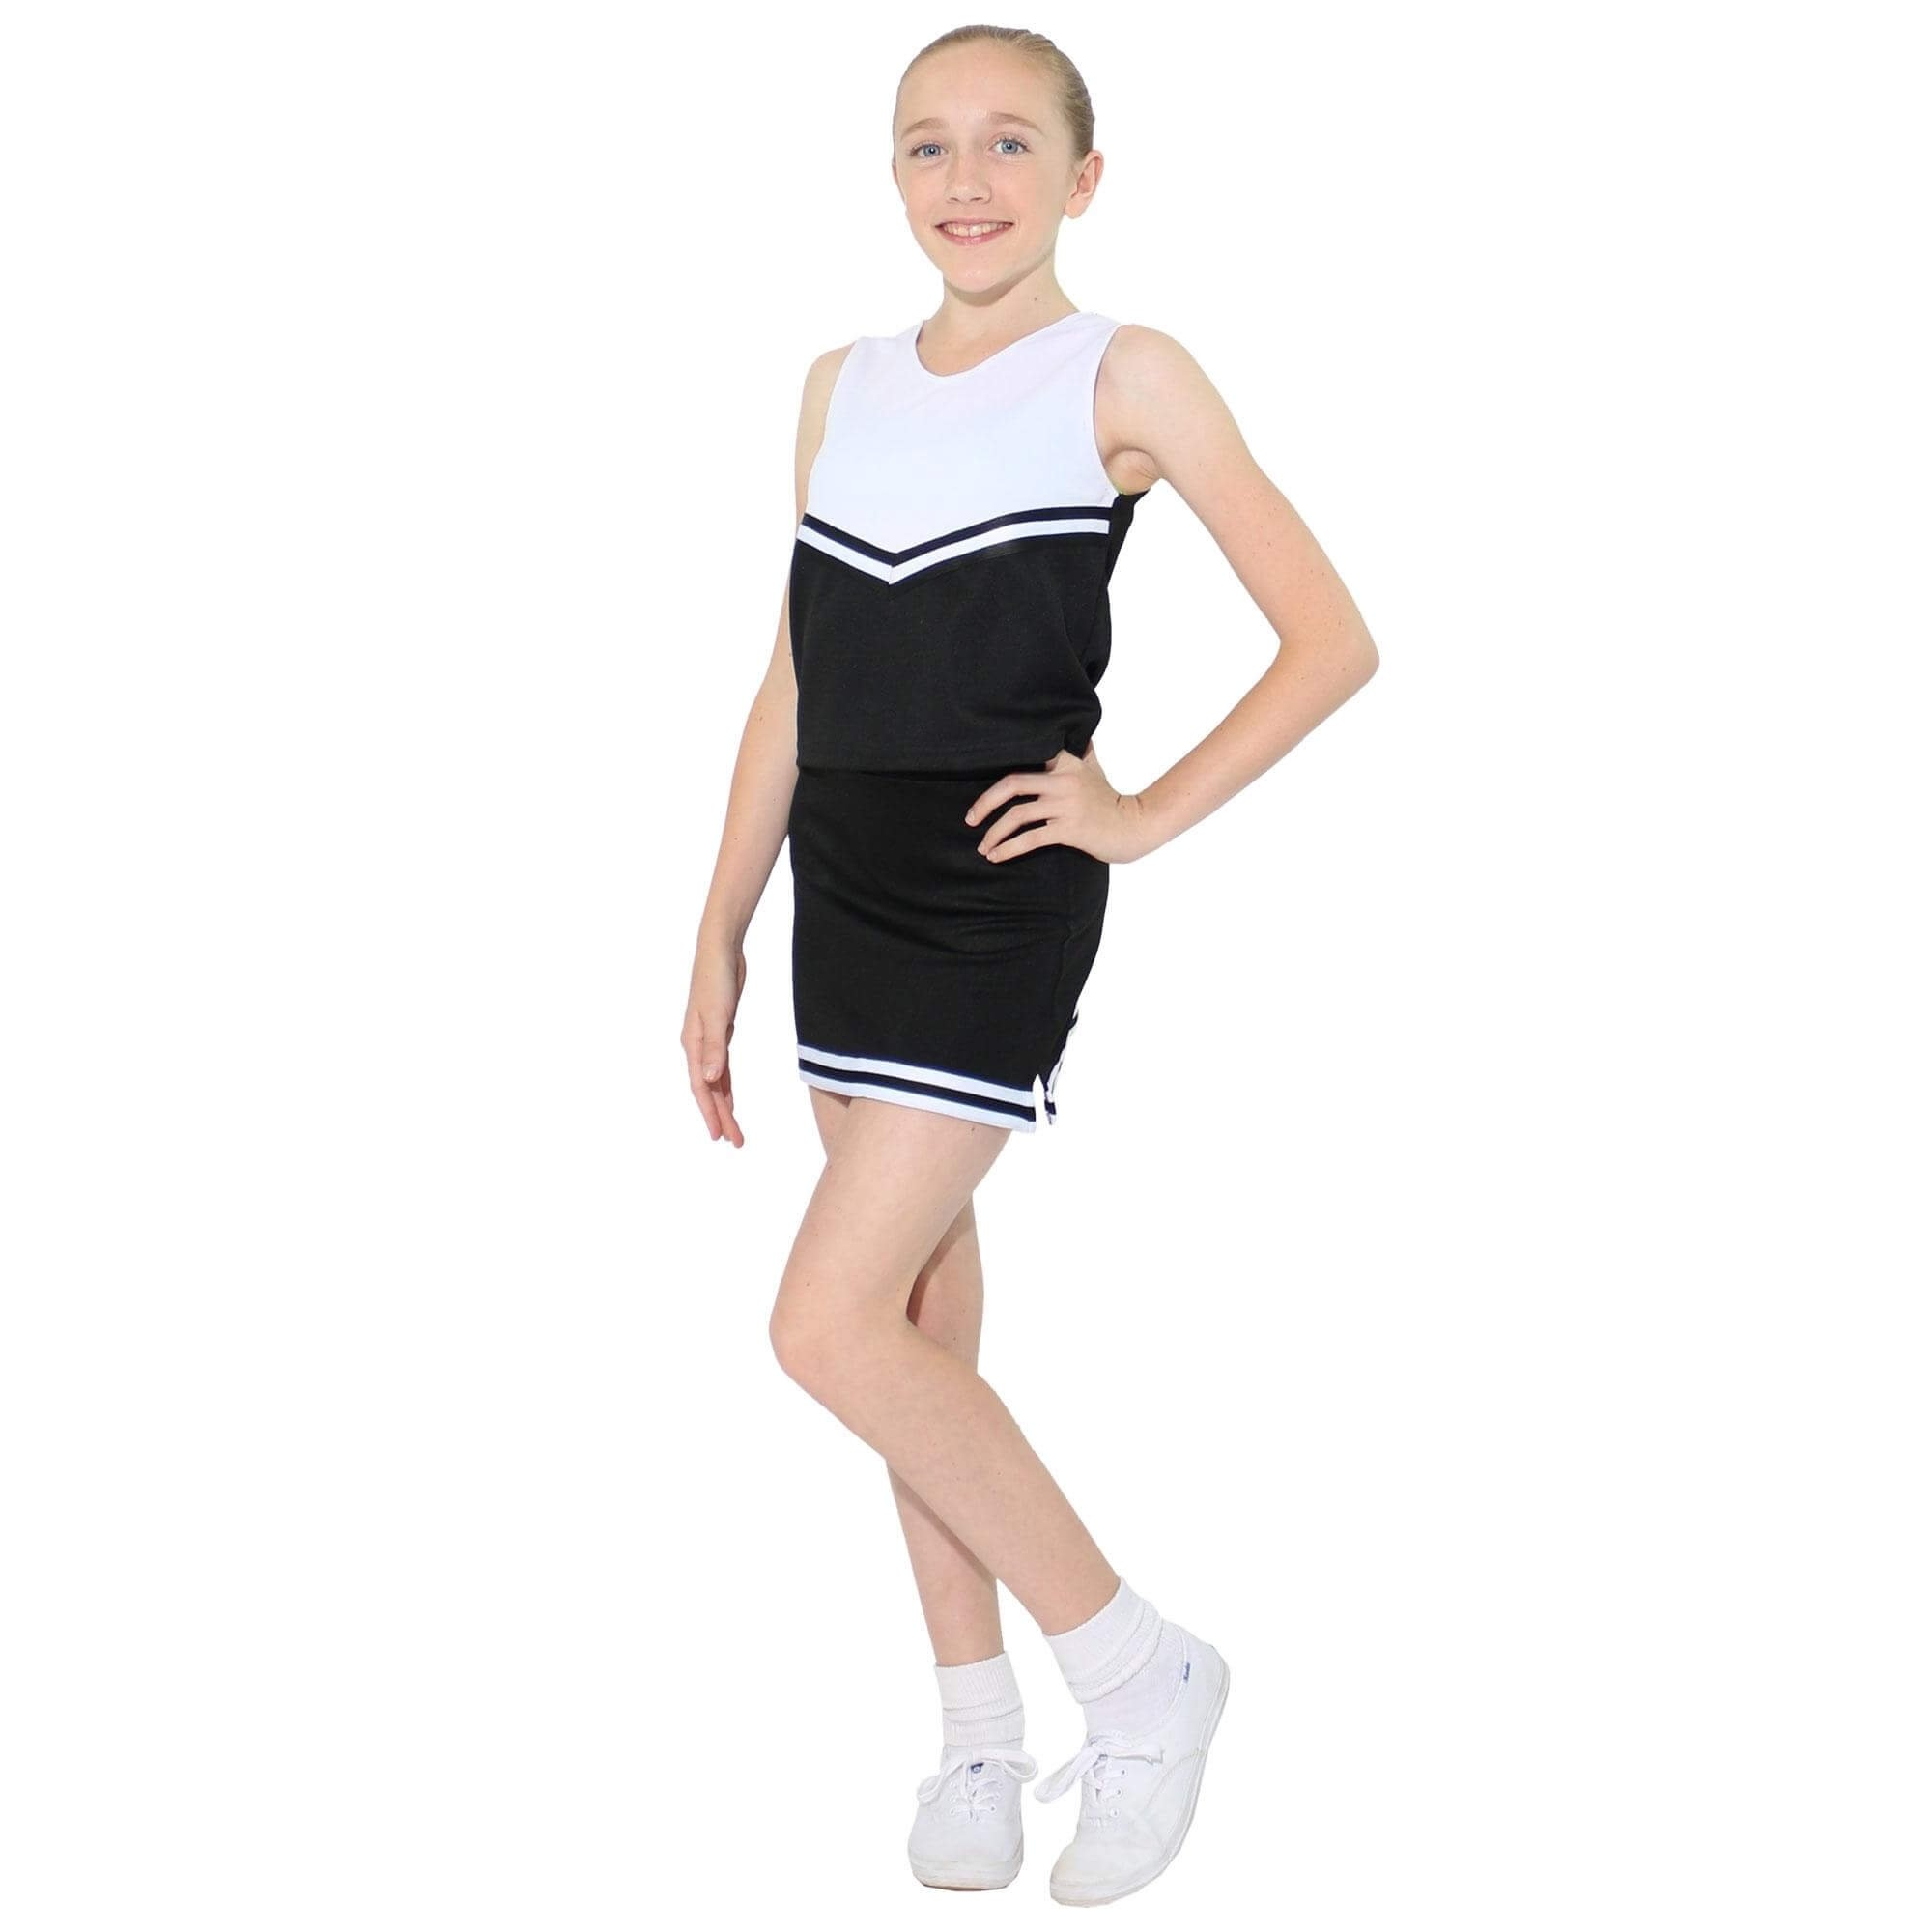 Danzcue Child V-Neck Cheerleaders Uniform Set